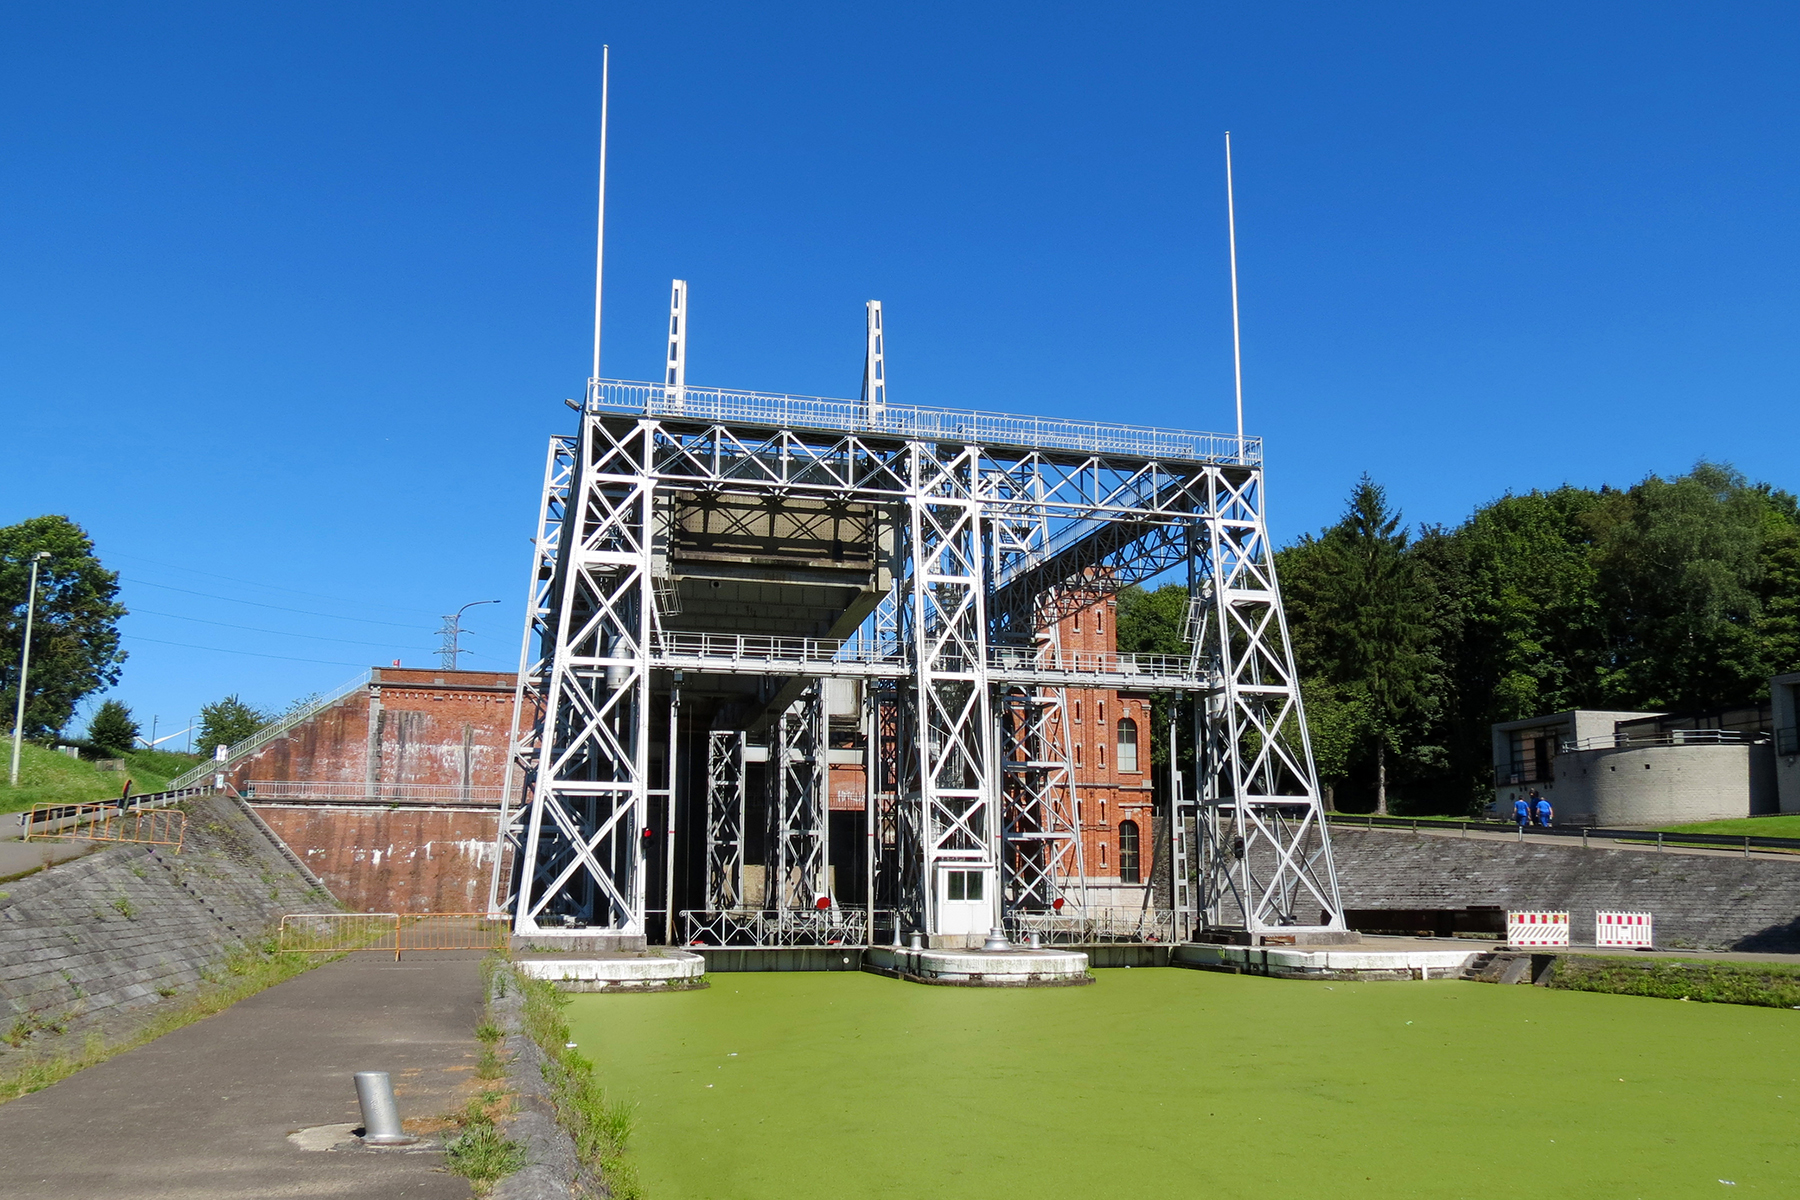 fotoreeks An example: boat trip on the route of the remarkable boat lifts